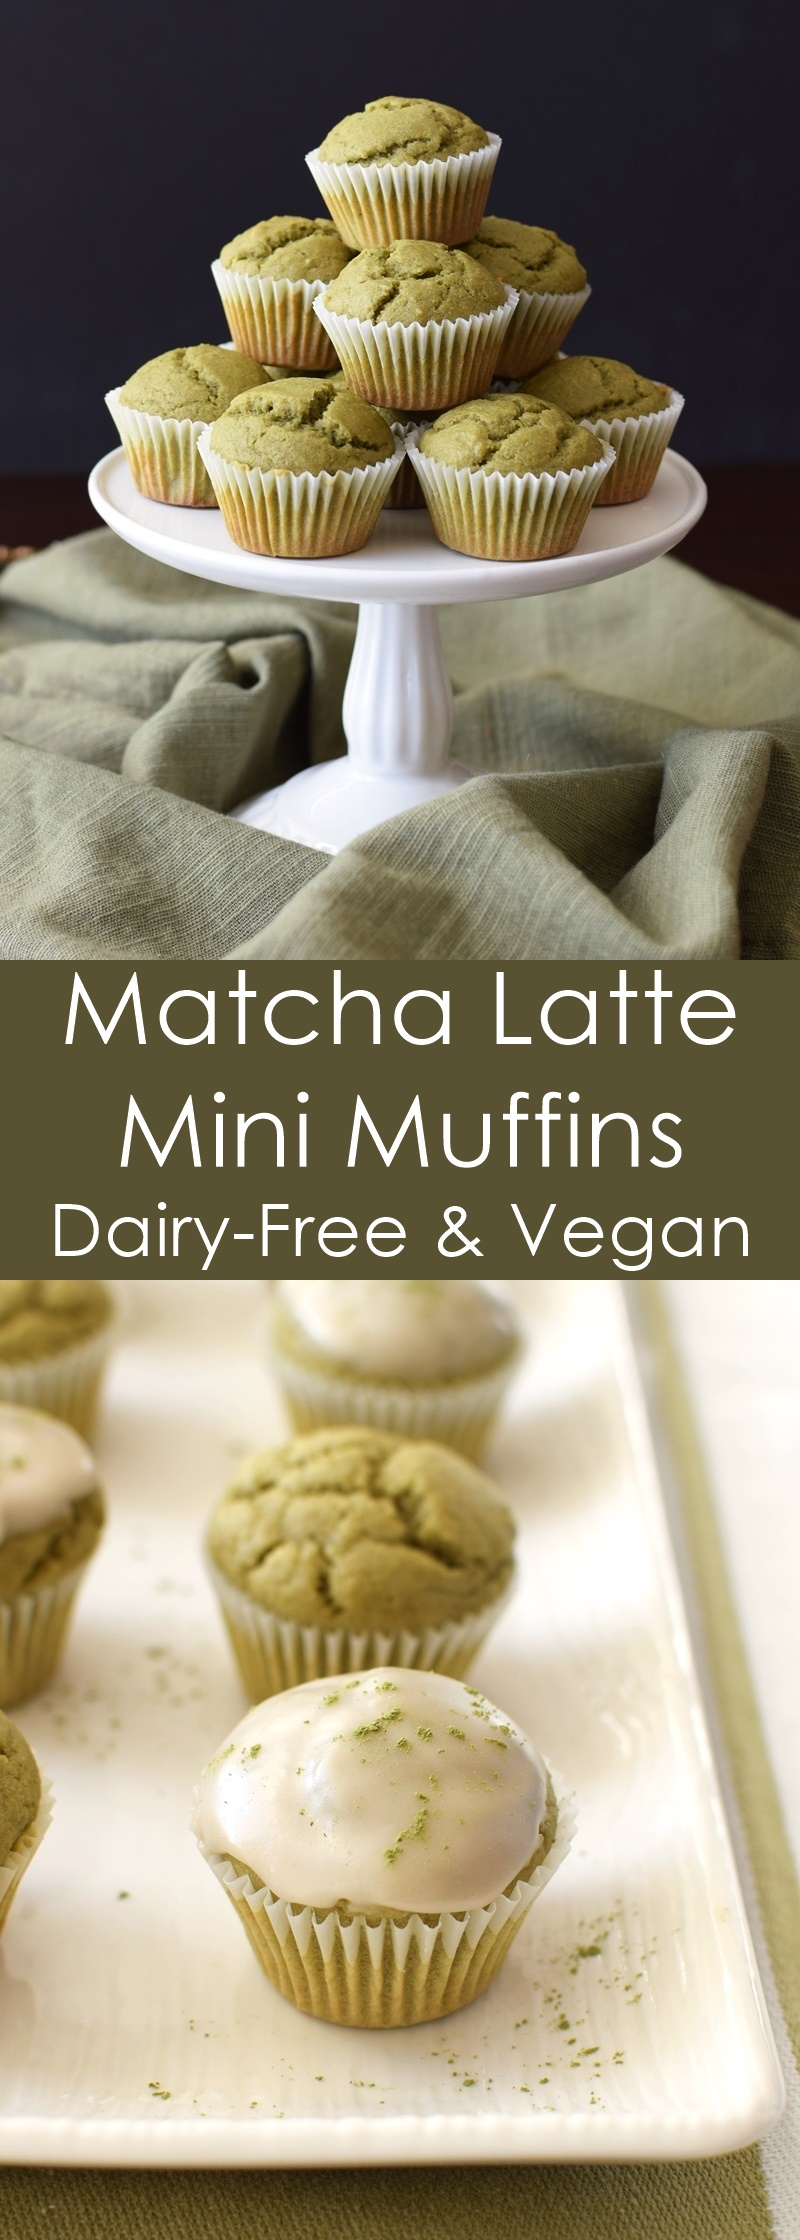 Easy muffin recipe no dairy